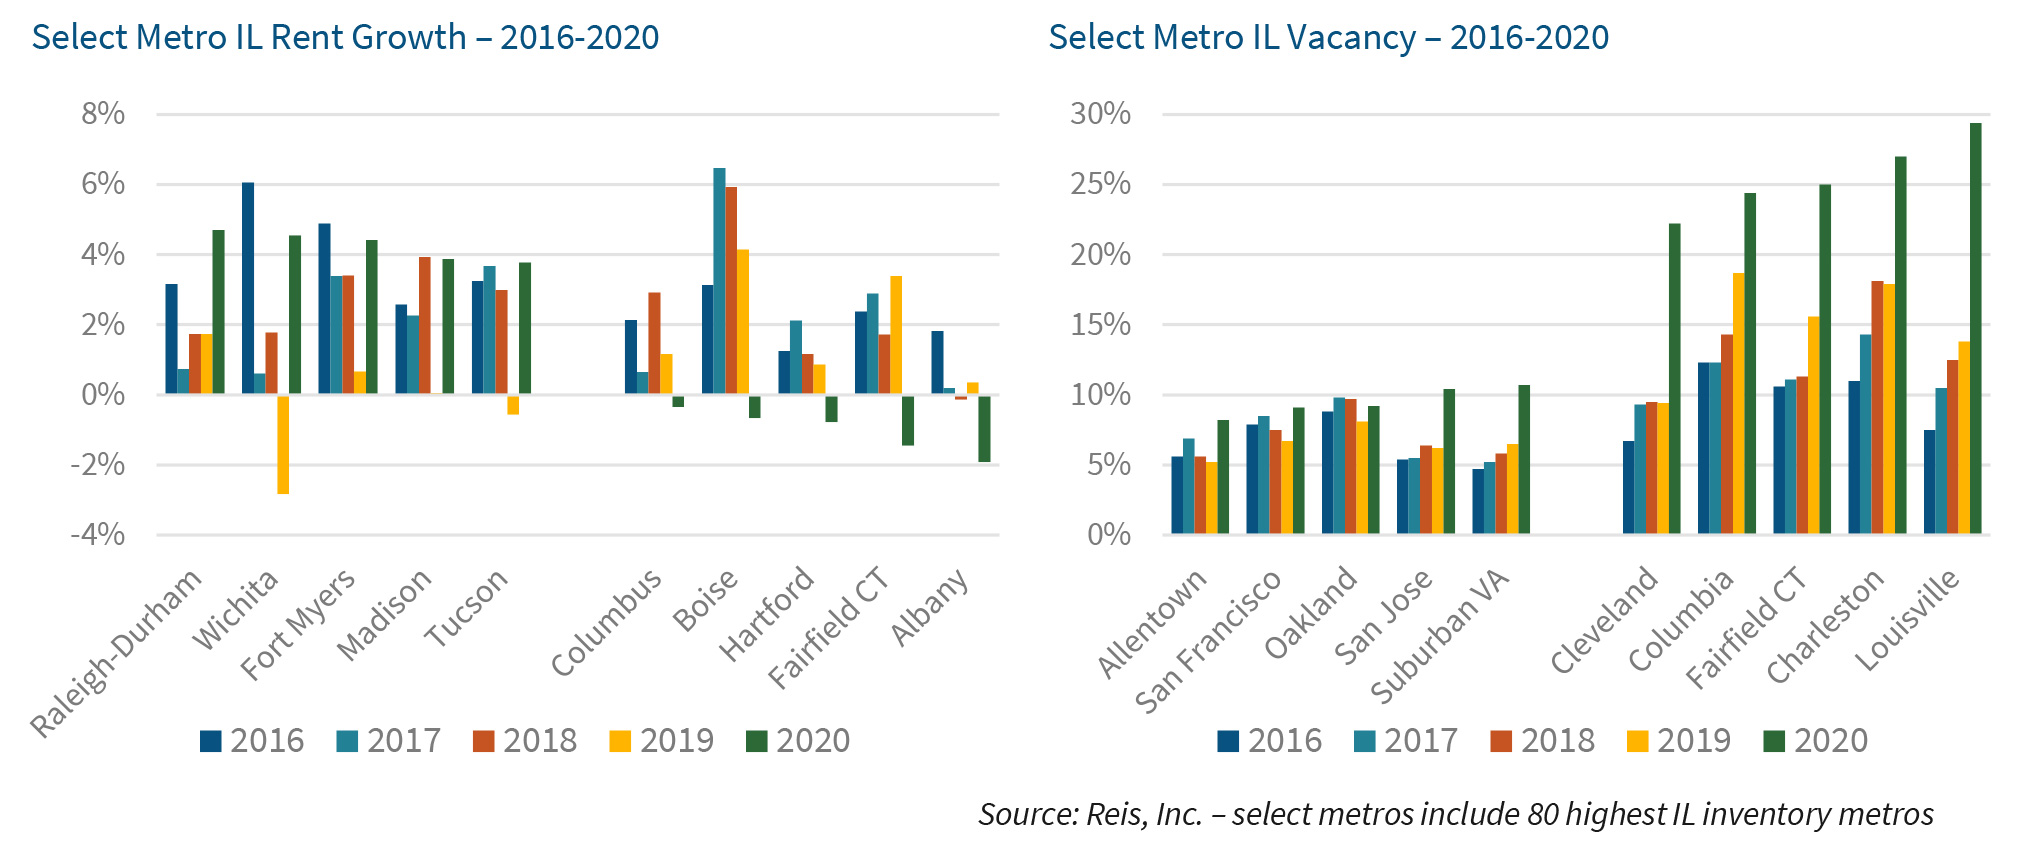 Select Metro IL Rent Growth – 2016-2020 | Select Metro IL Vacancy – 2016-2020